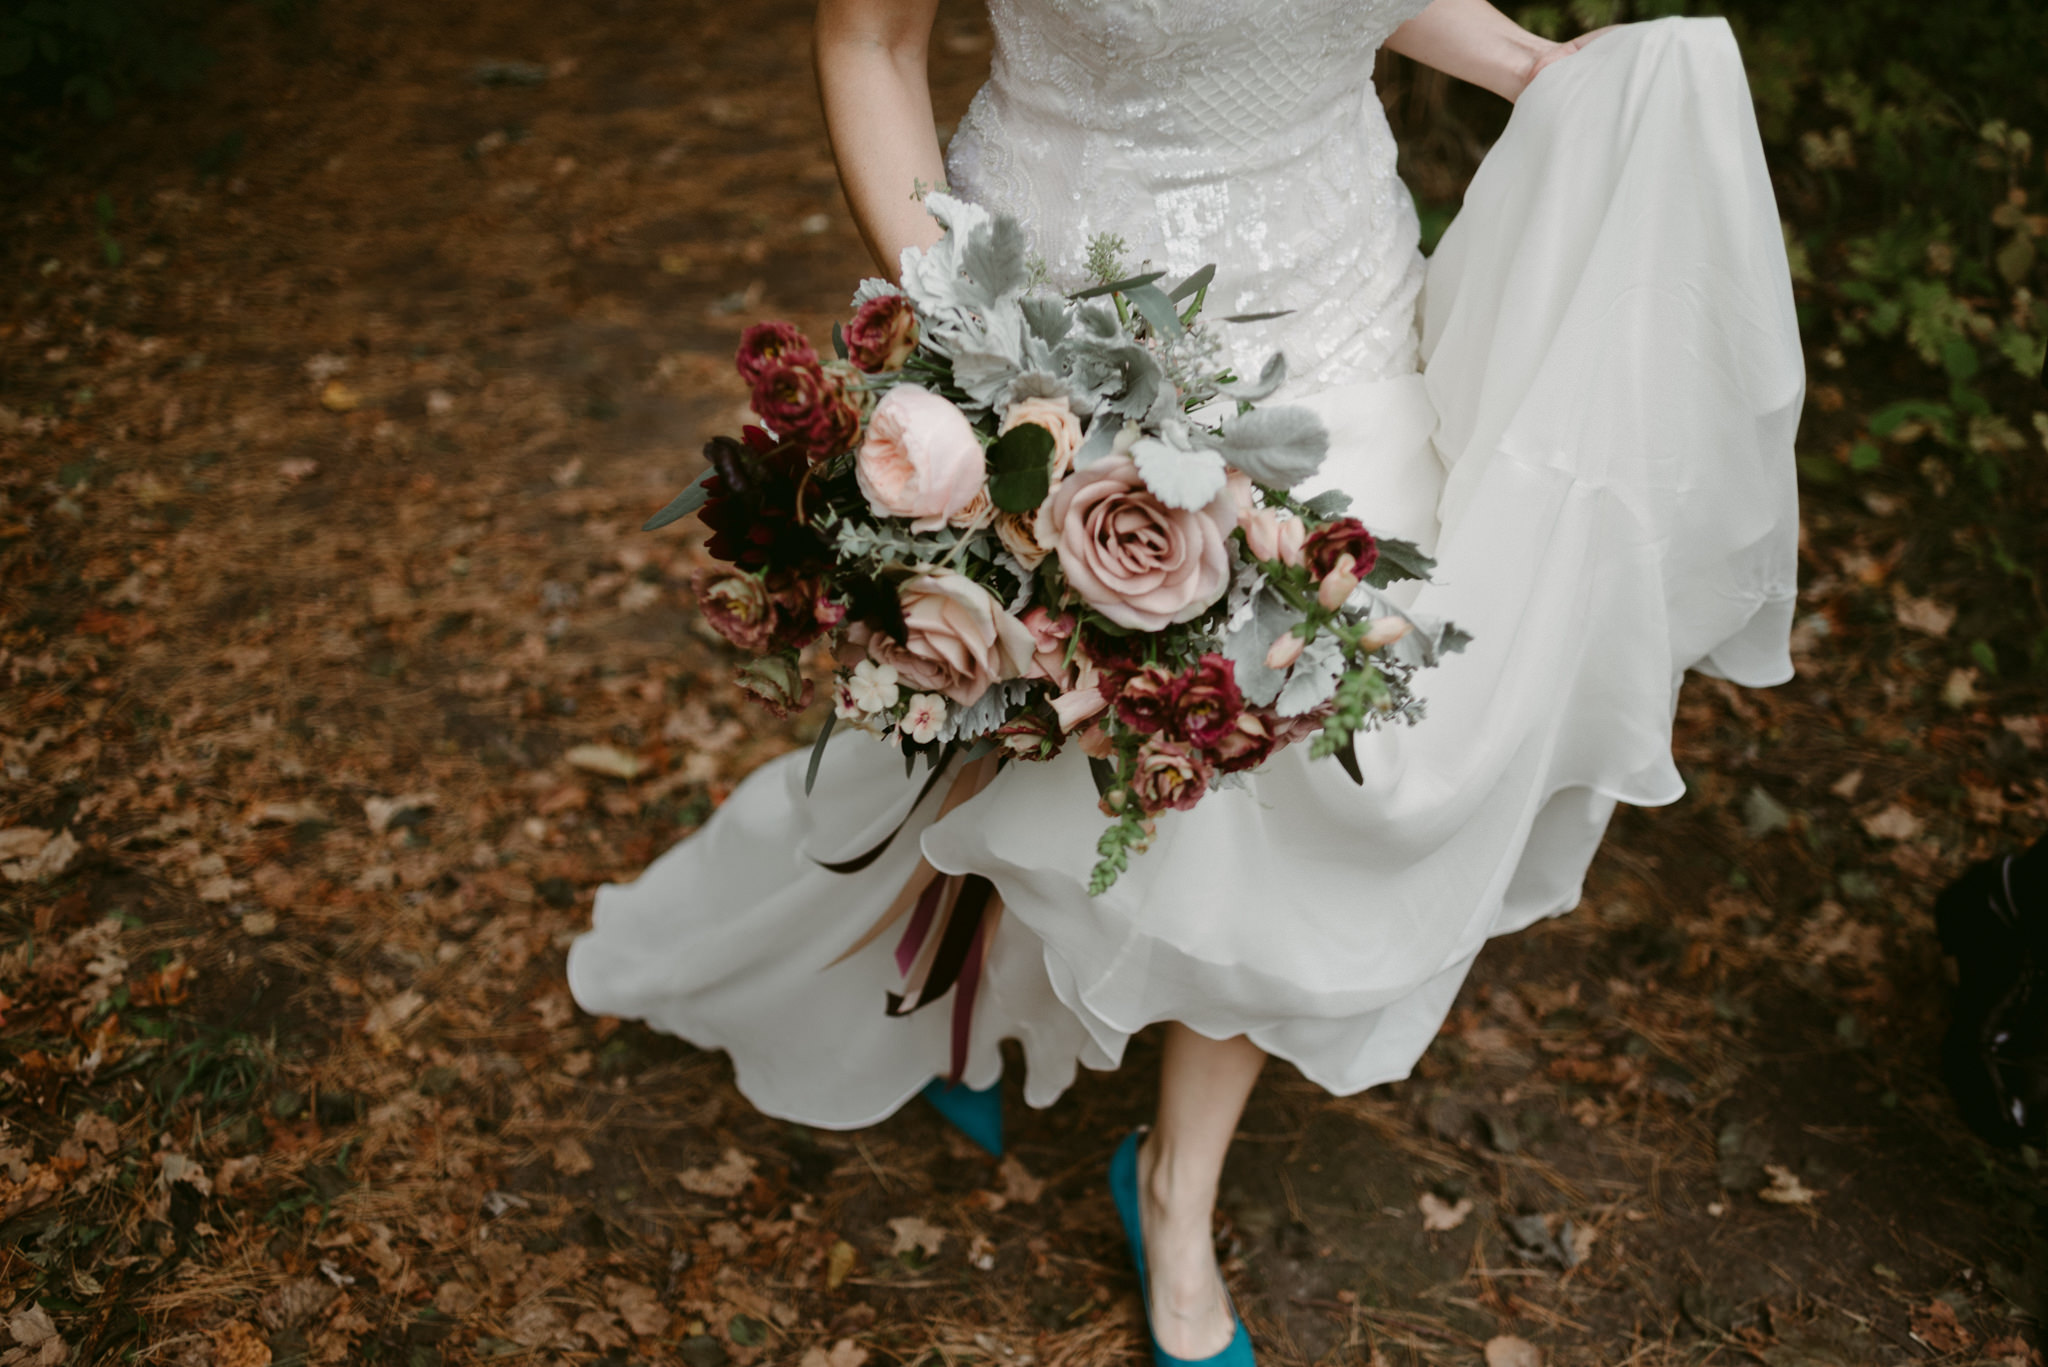 Bride in blue heels walking in forest holding bouquet